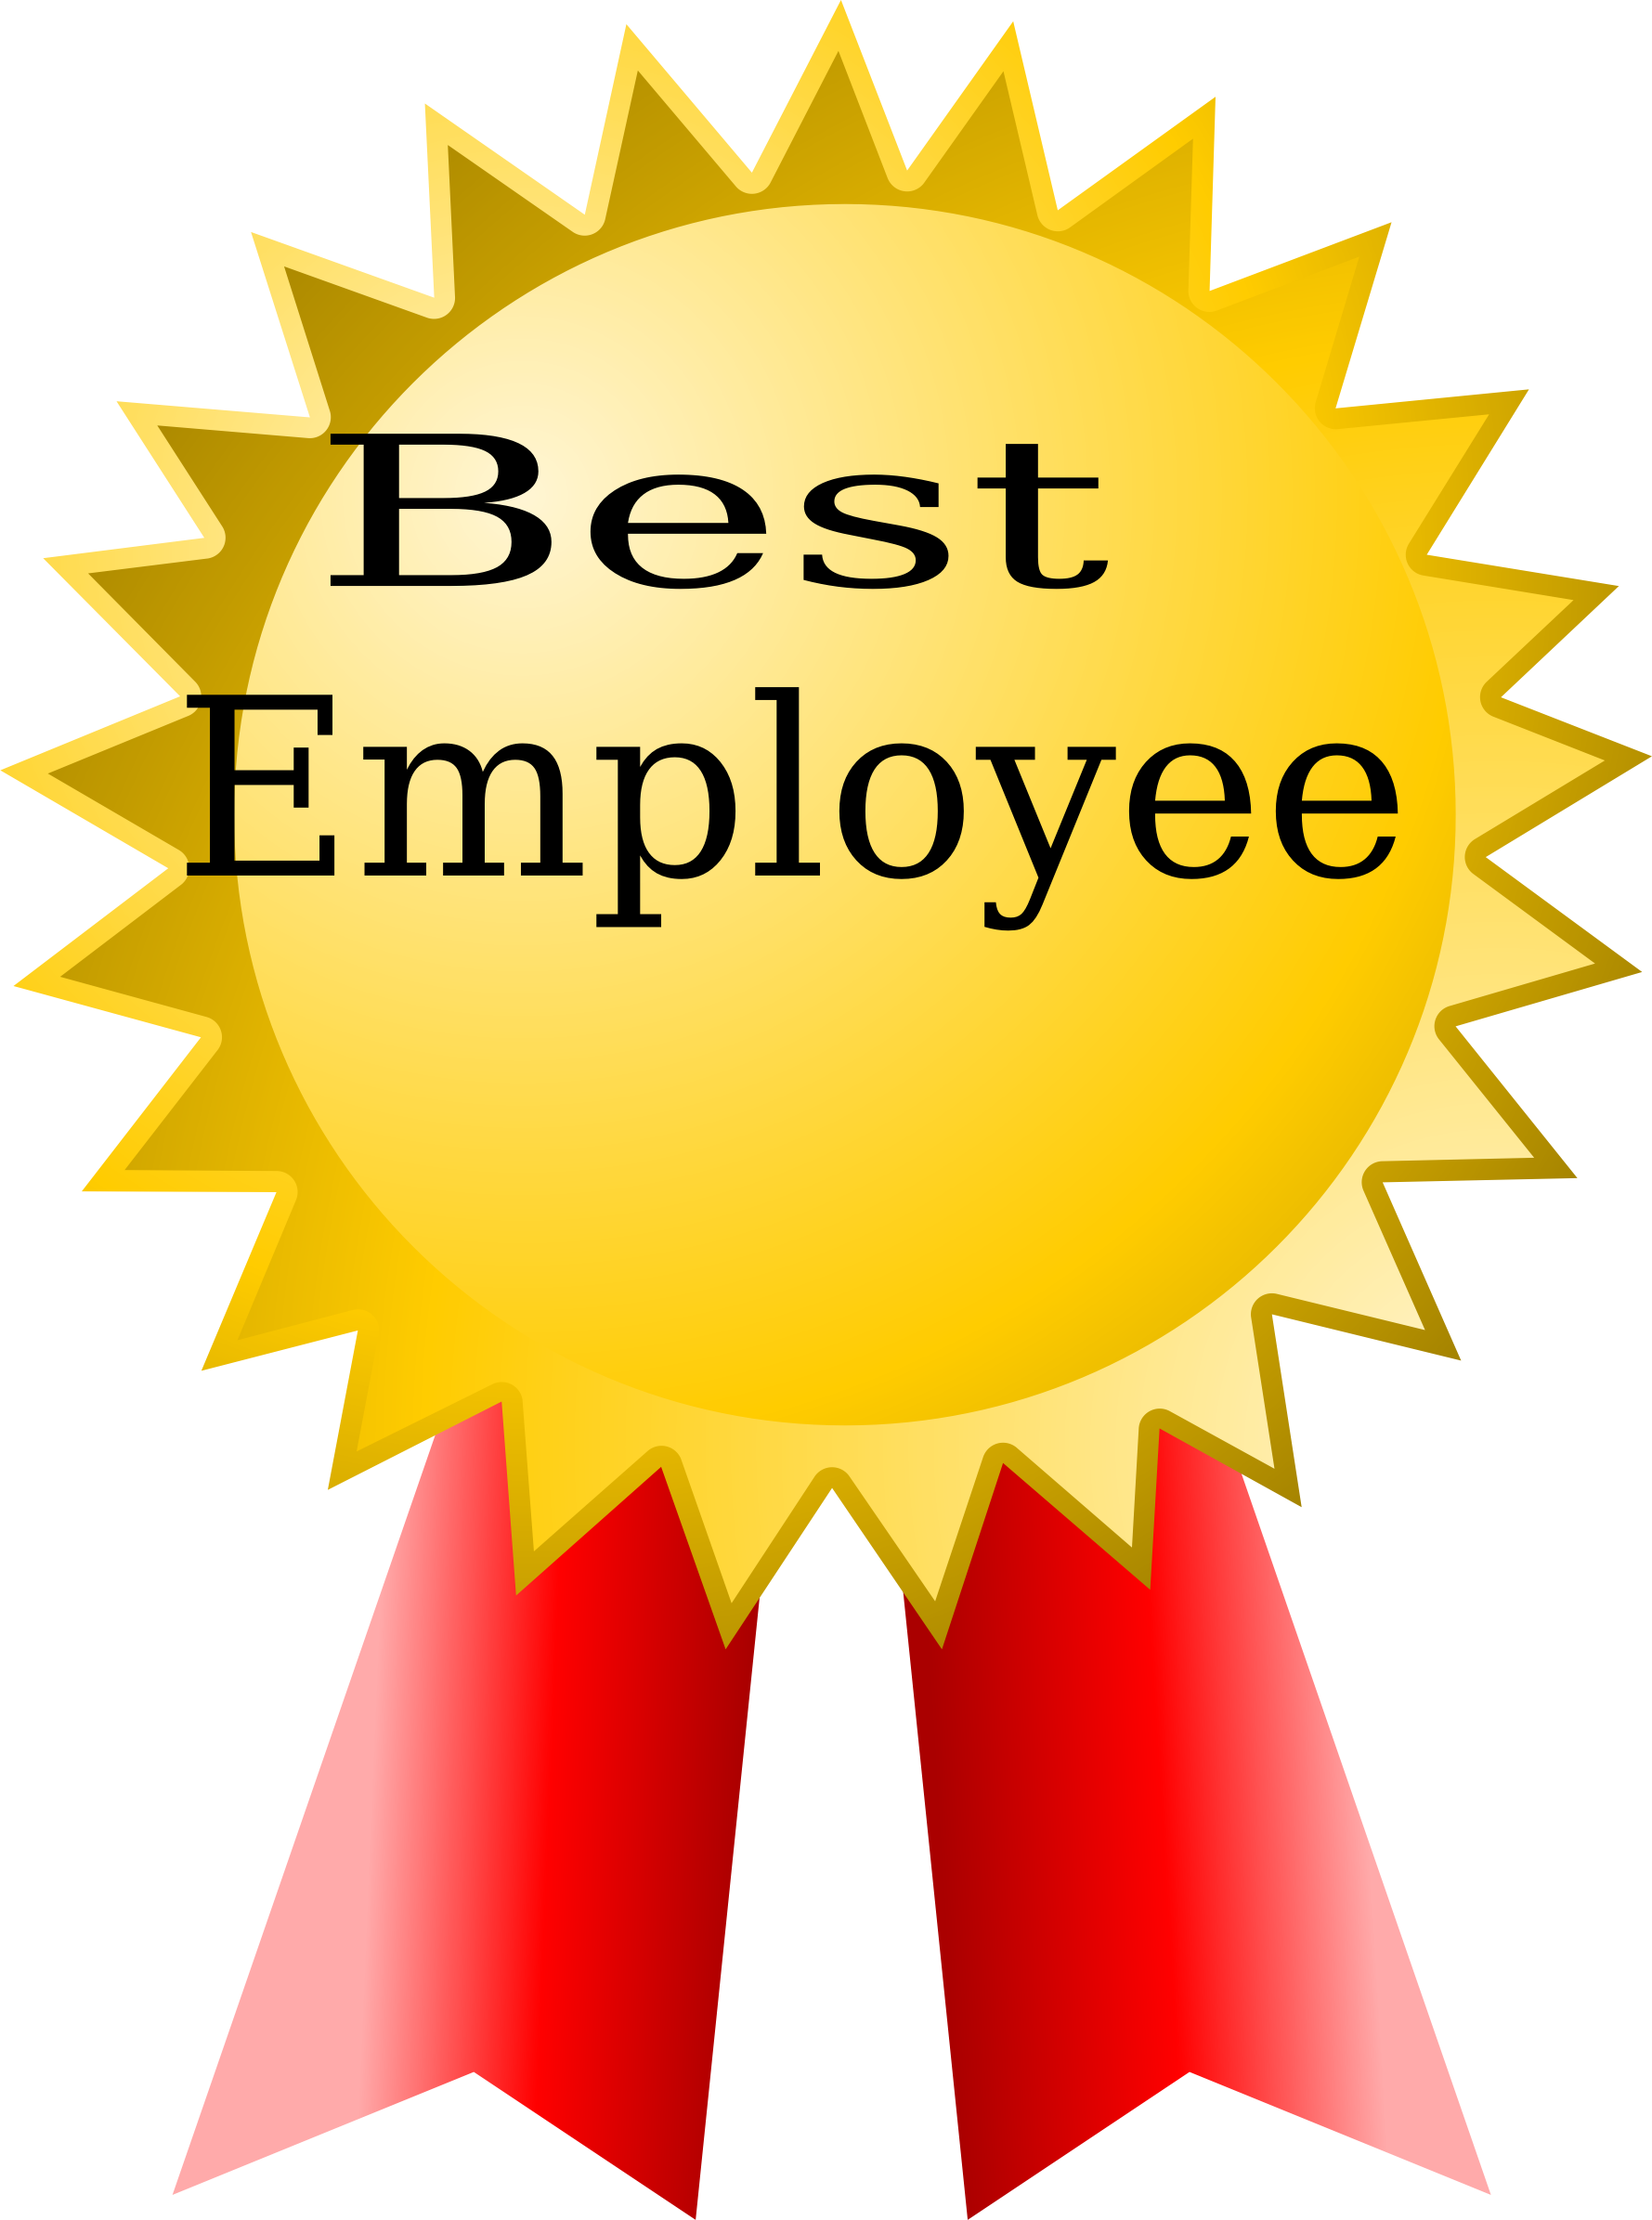 Fight clipart instinct. Best employee icons png